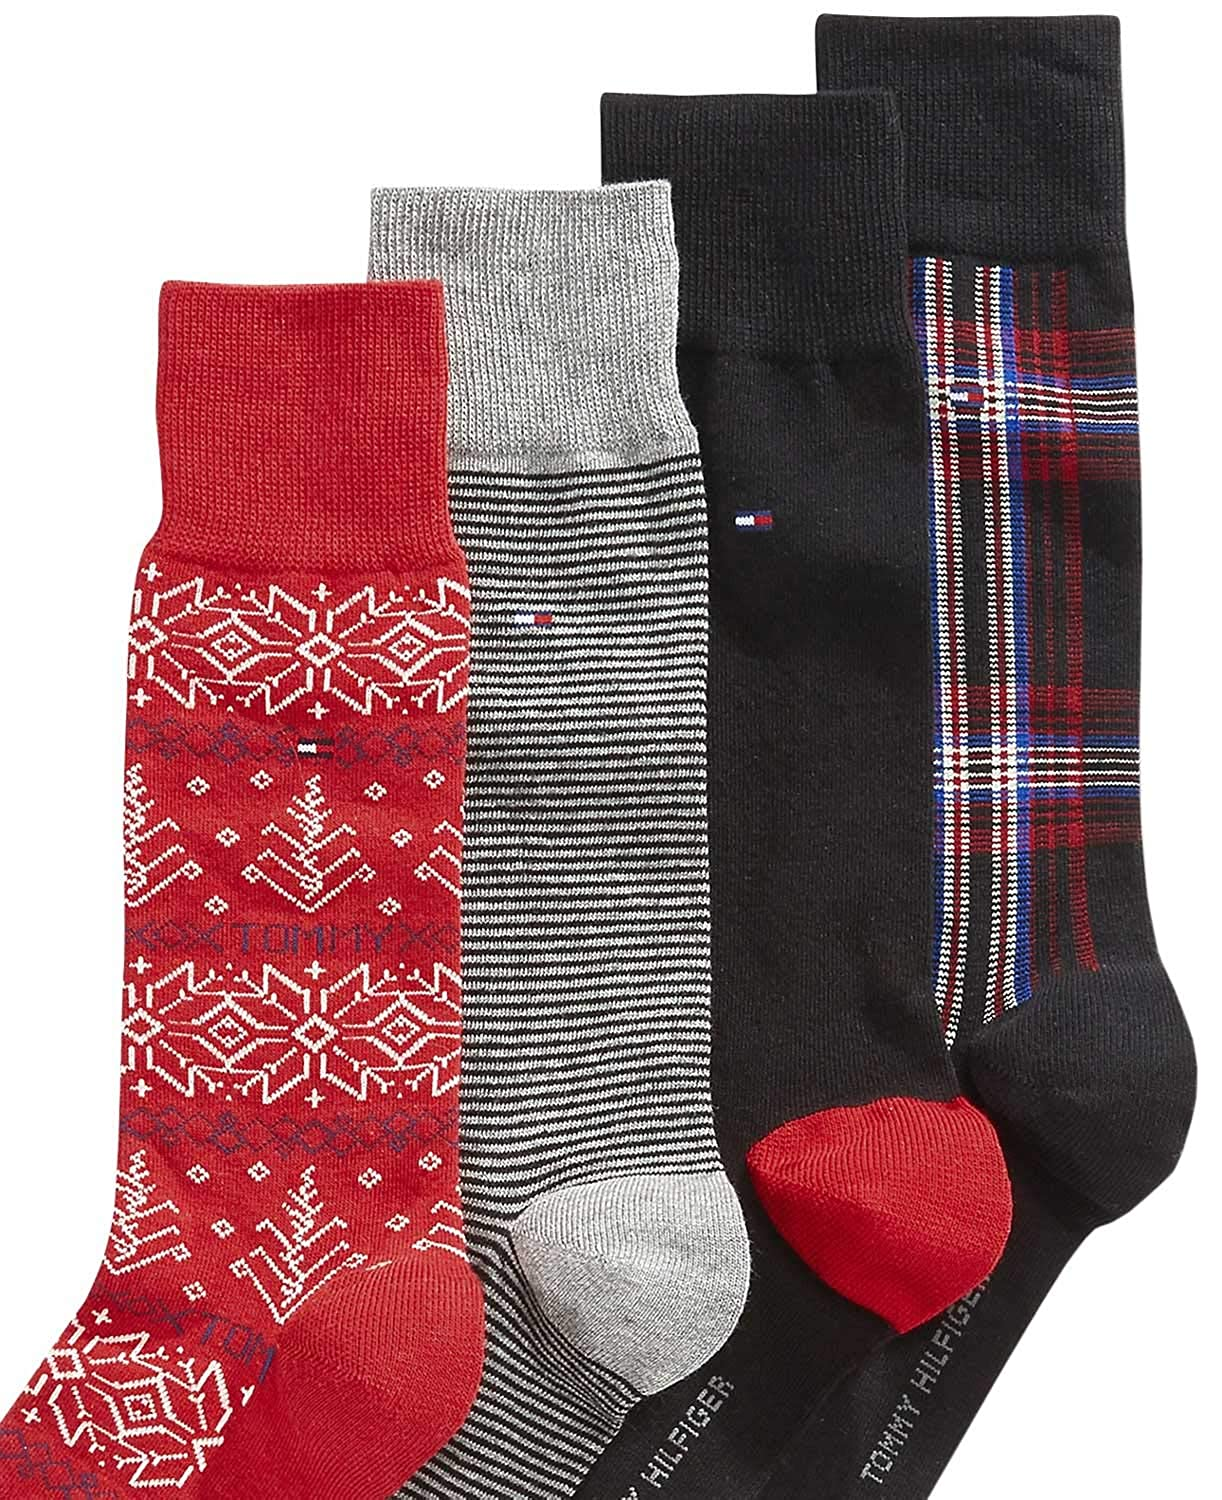 fce3b1e999af Tommy Hilfiger Holiday Fair Isle Socks 4-Pack, Variety Pack at Amazon Men's  Clothing store: